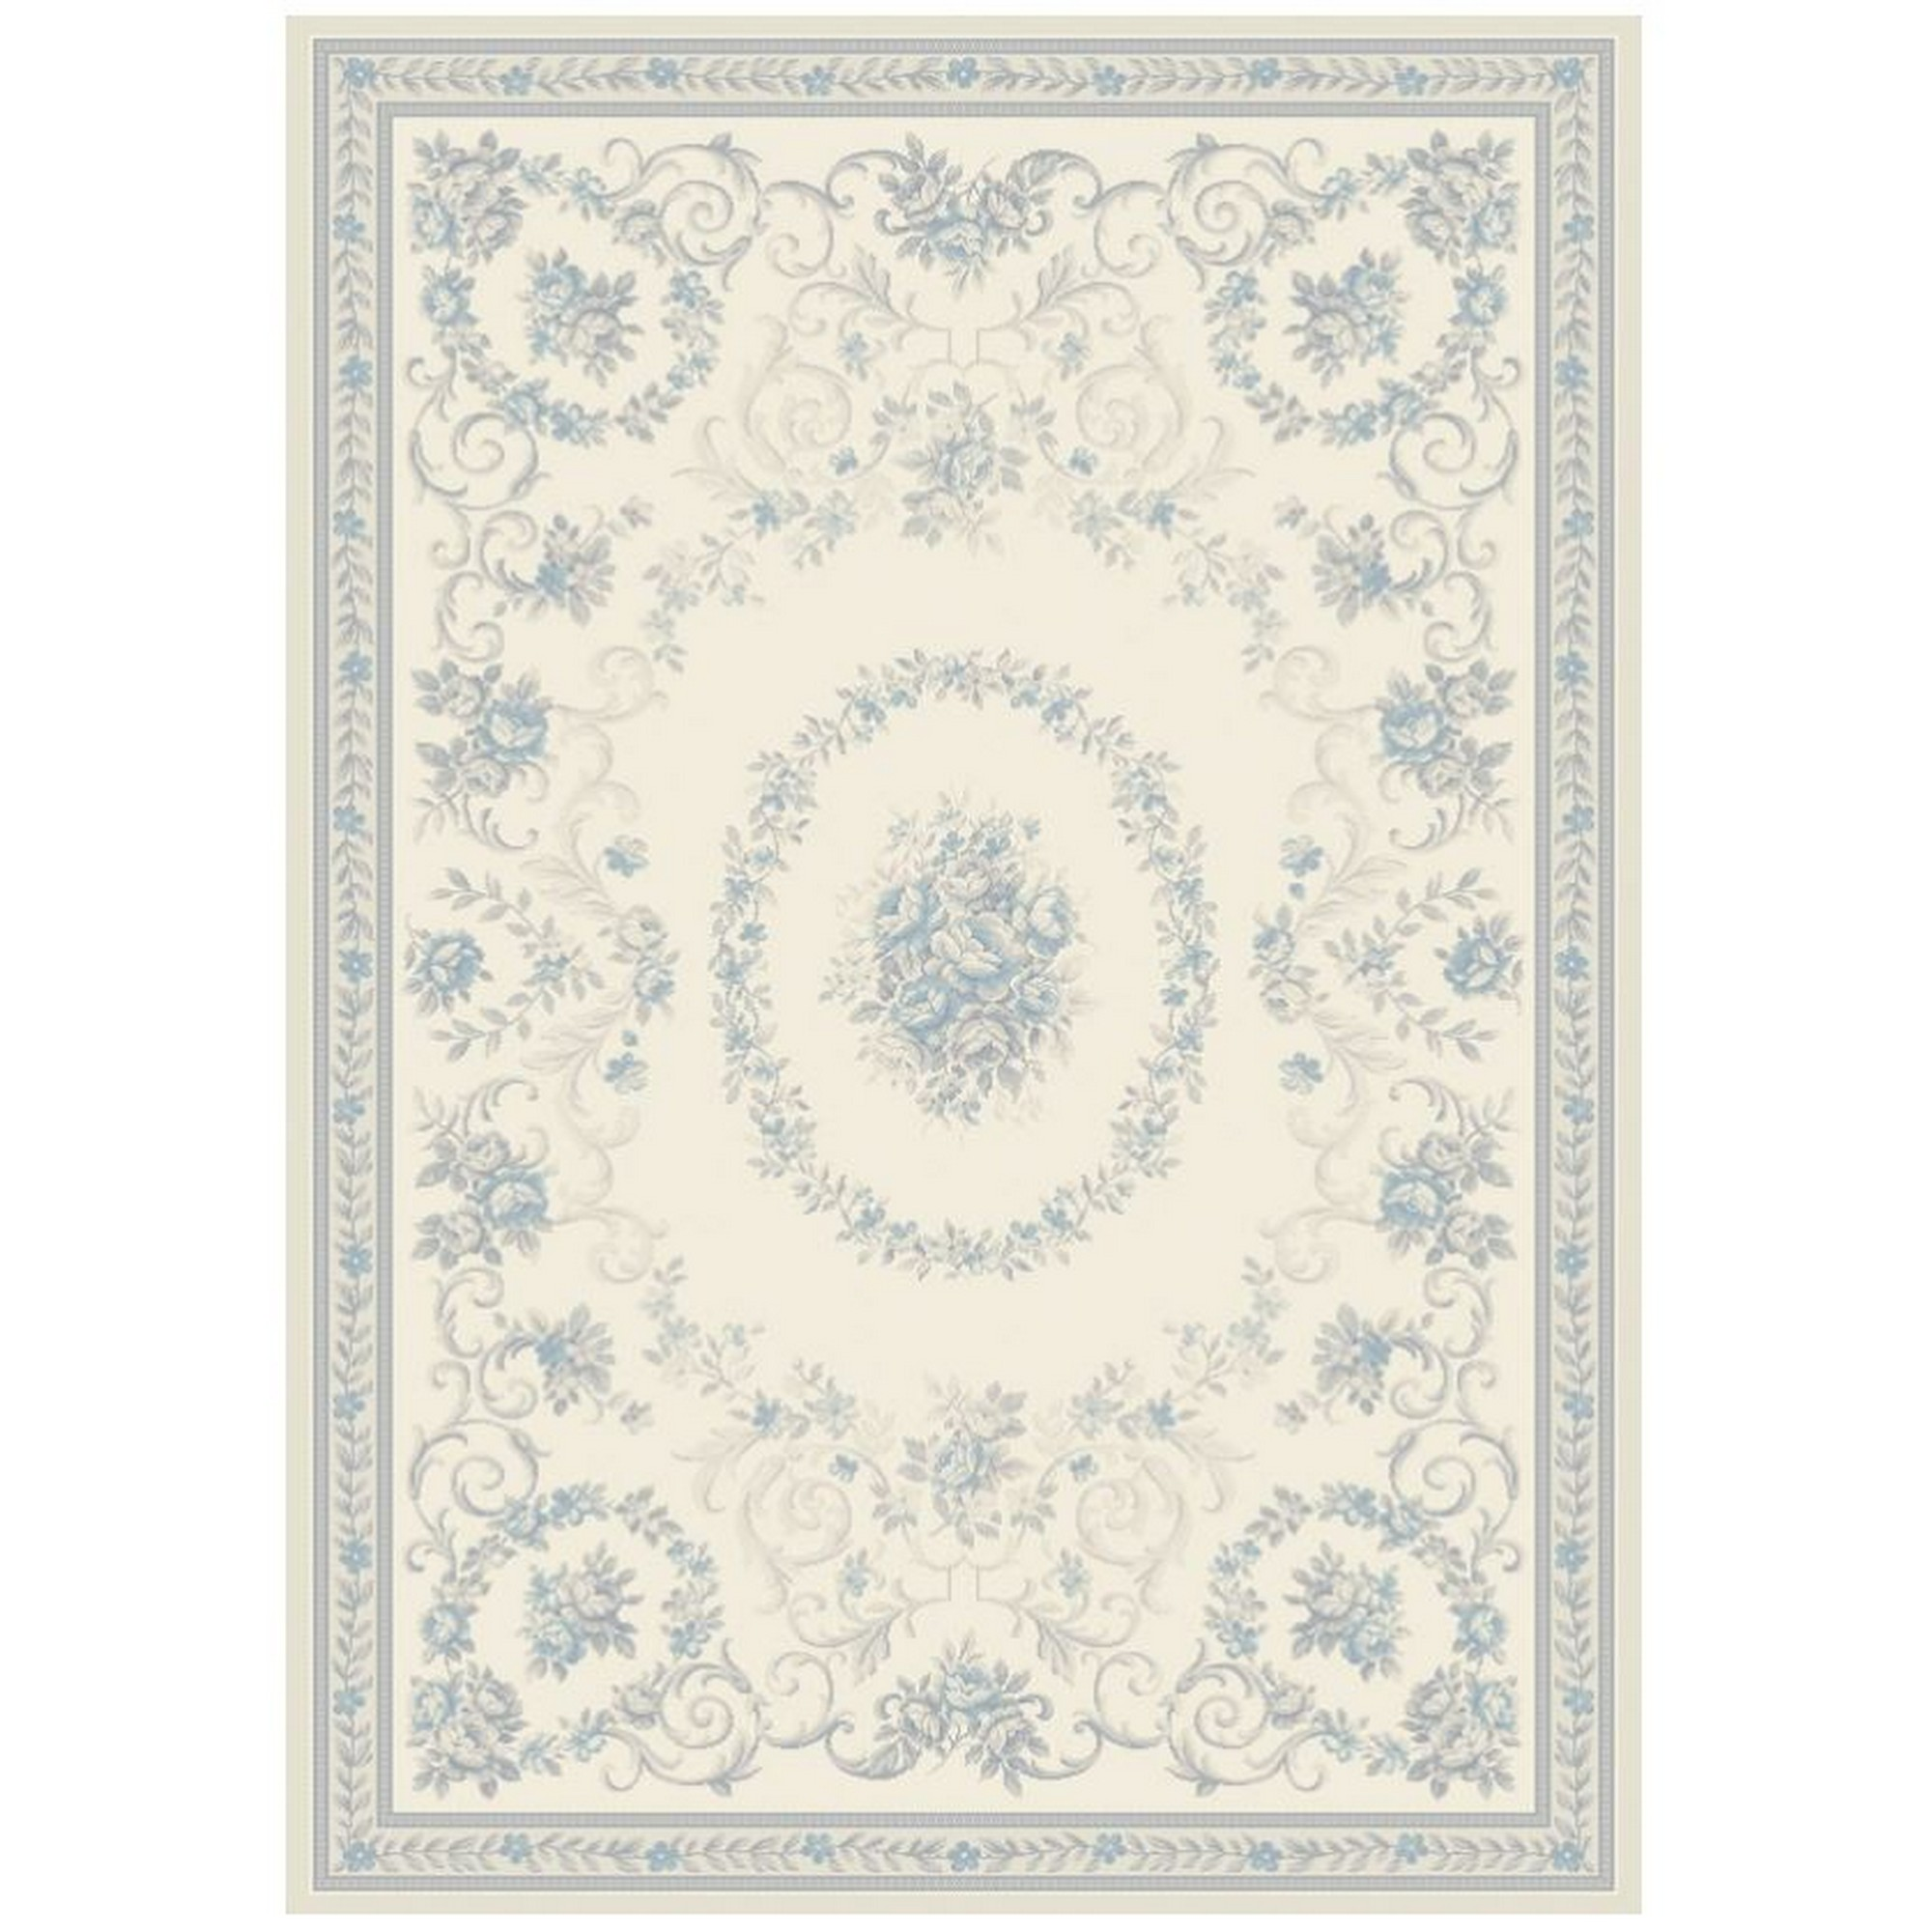 Echo Dauphin Rugs EC11 in Cream